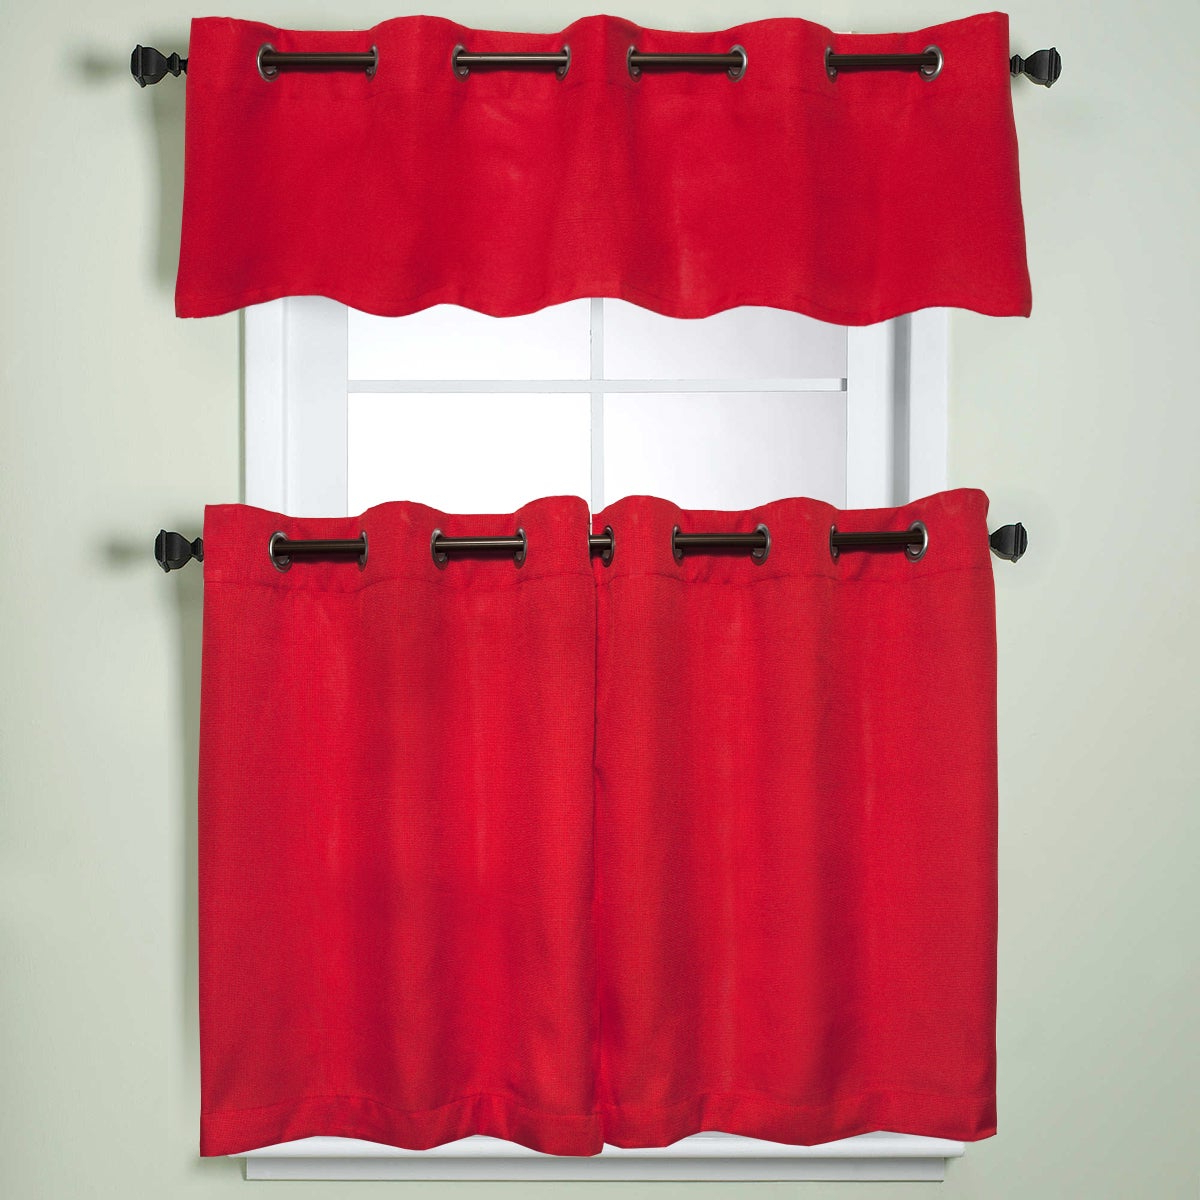 Modern Subtle Texture Solid White Kitchen Curtain Parts With Grommets Tier And Valance Options With Best And Newest Modern Subtle Texture Solid Red Kitchen Curtain Parts With Grommets Tier And Valance Options (View 4 of 20)